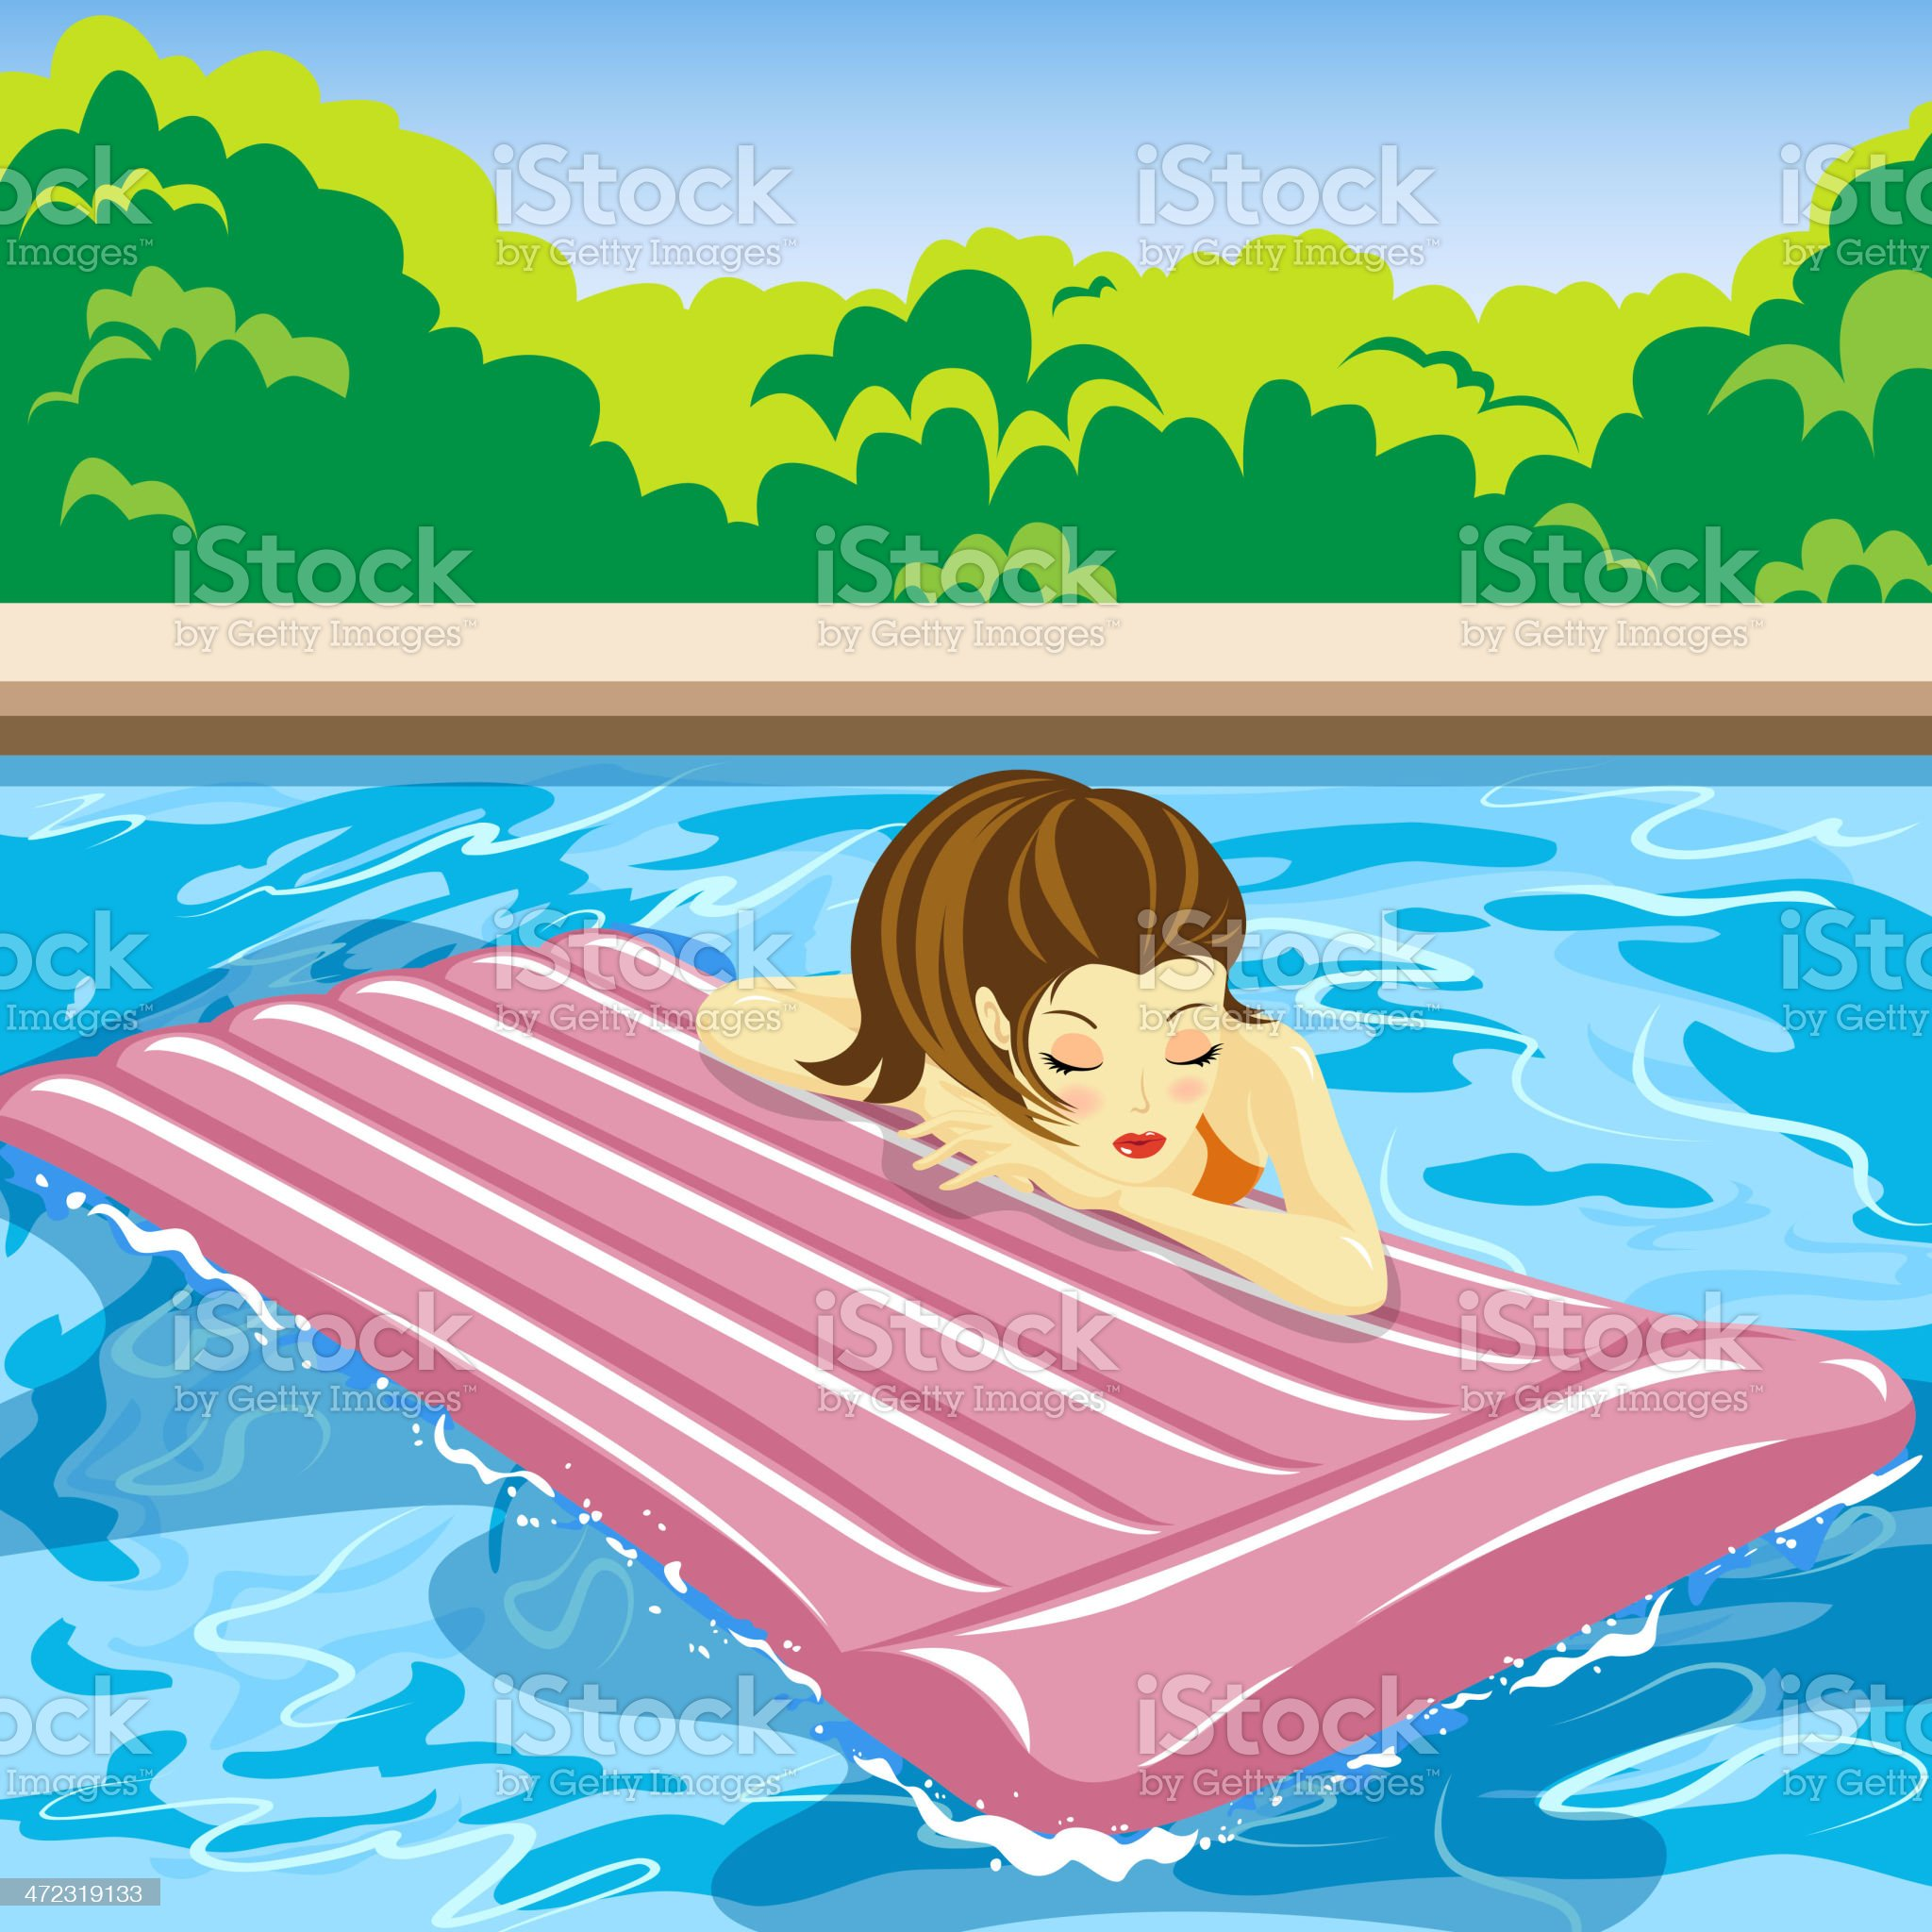 Lady Enjoying Summer with Inflatable Raft in Swimming Pool royalty-free stock vector art